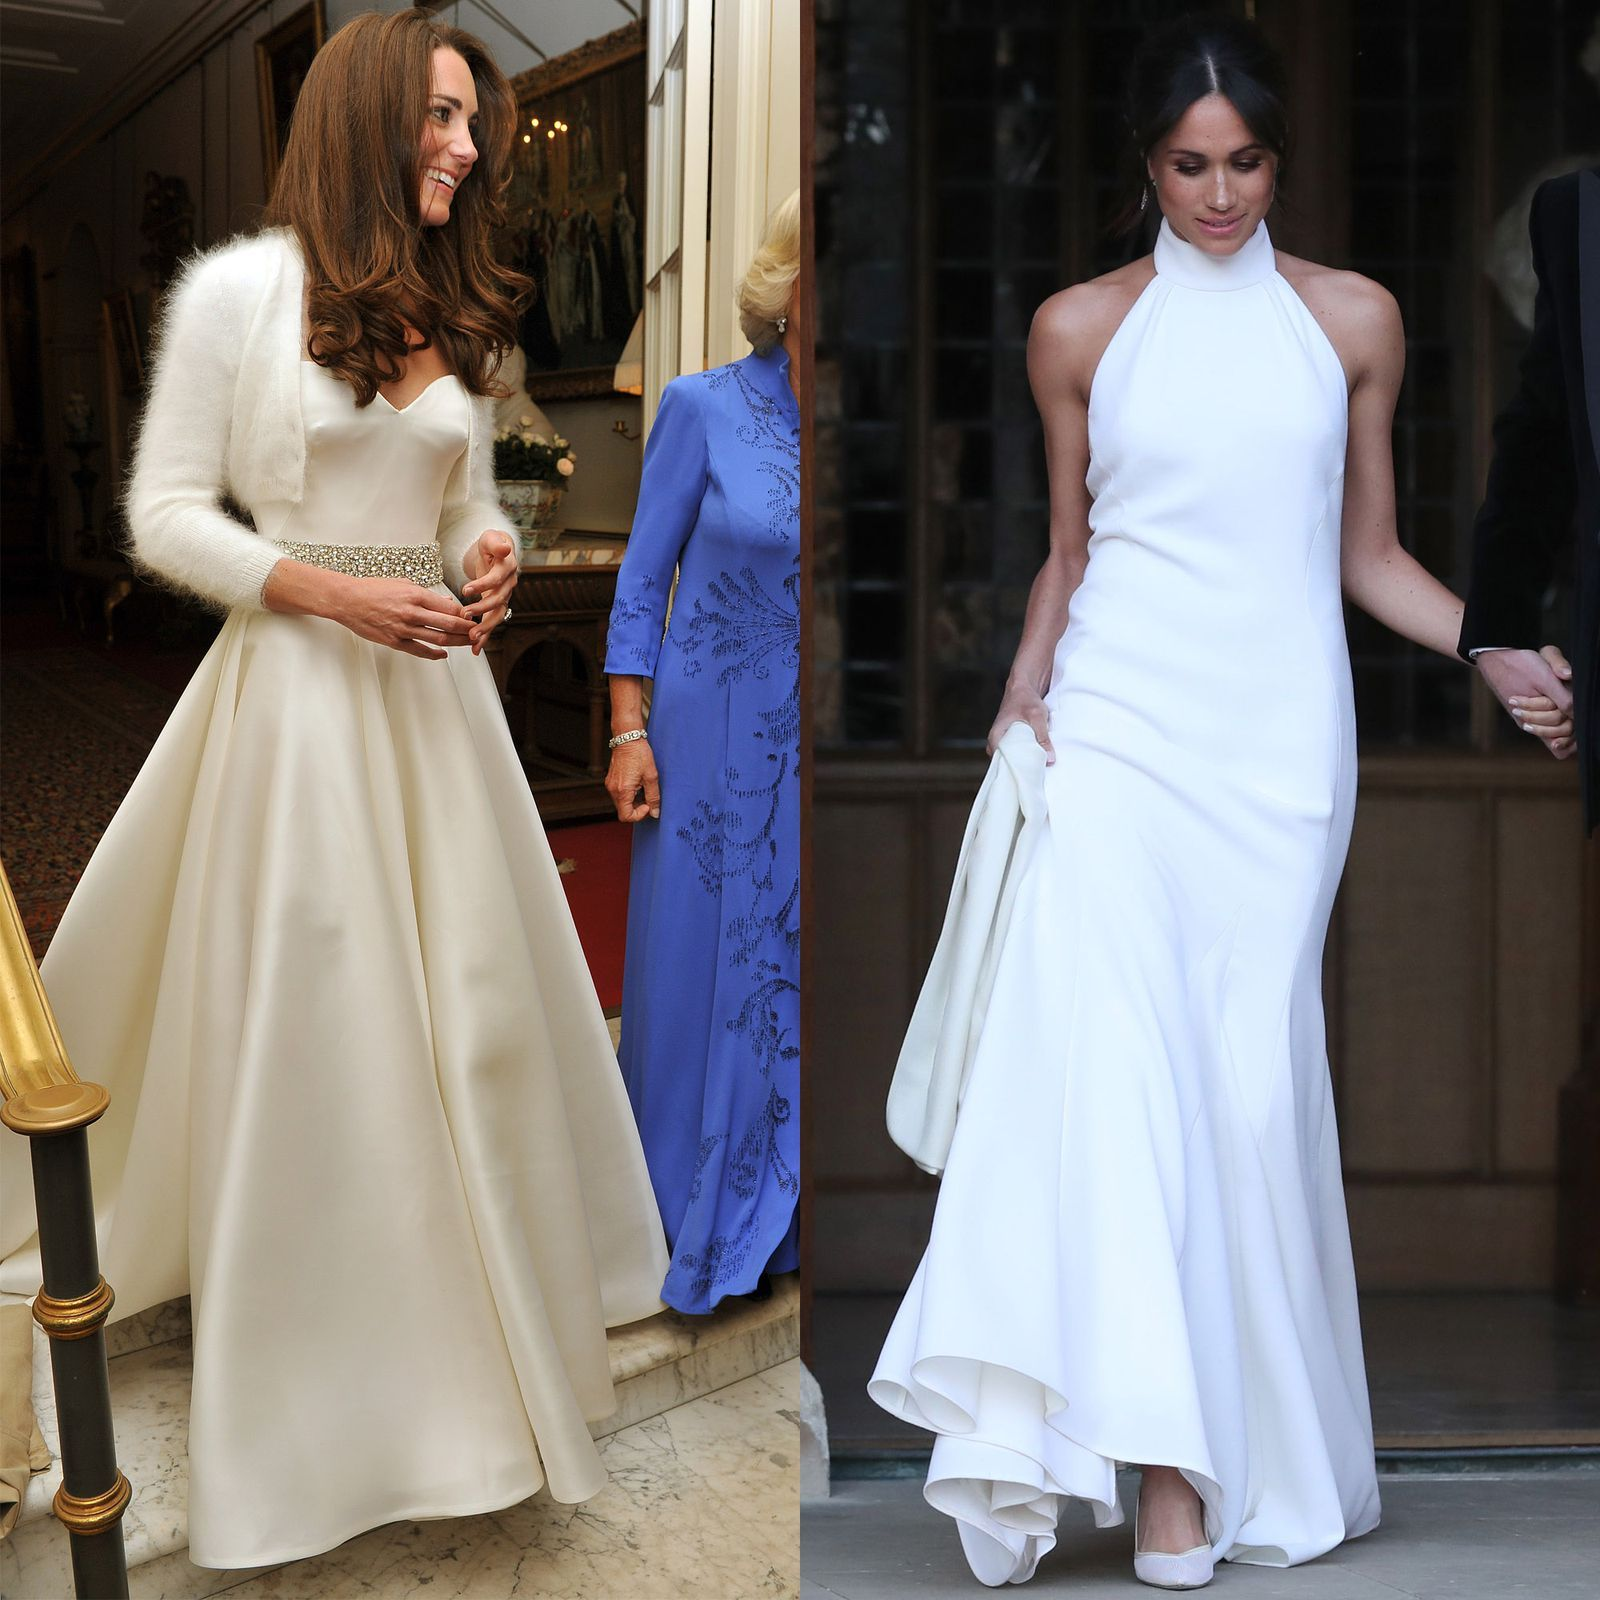 Meghan Markle S Second Wedding Dress Makes Kate S Look Like A Ceremony Gown Royal Wedding Dress Second Wedding Dresses Wedding Dresses